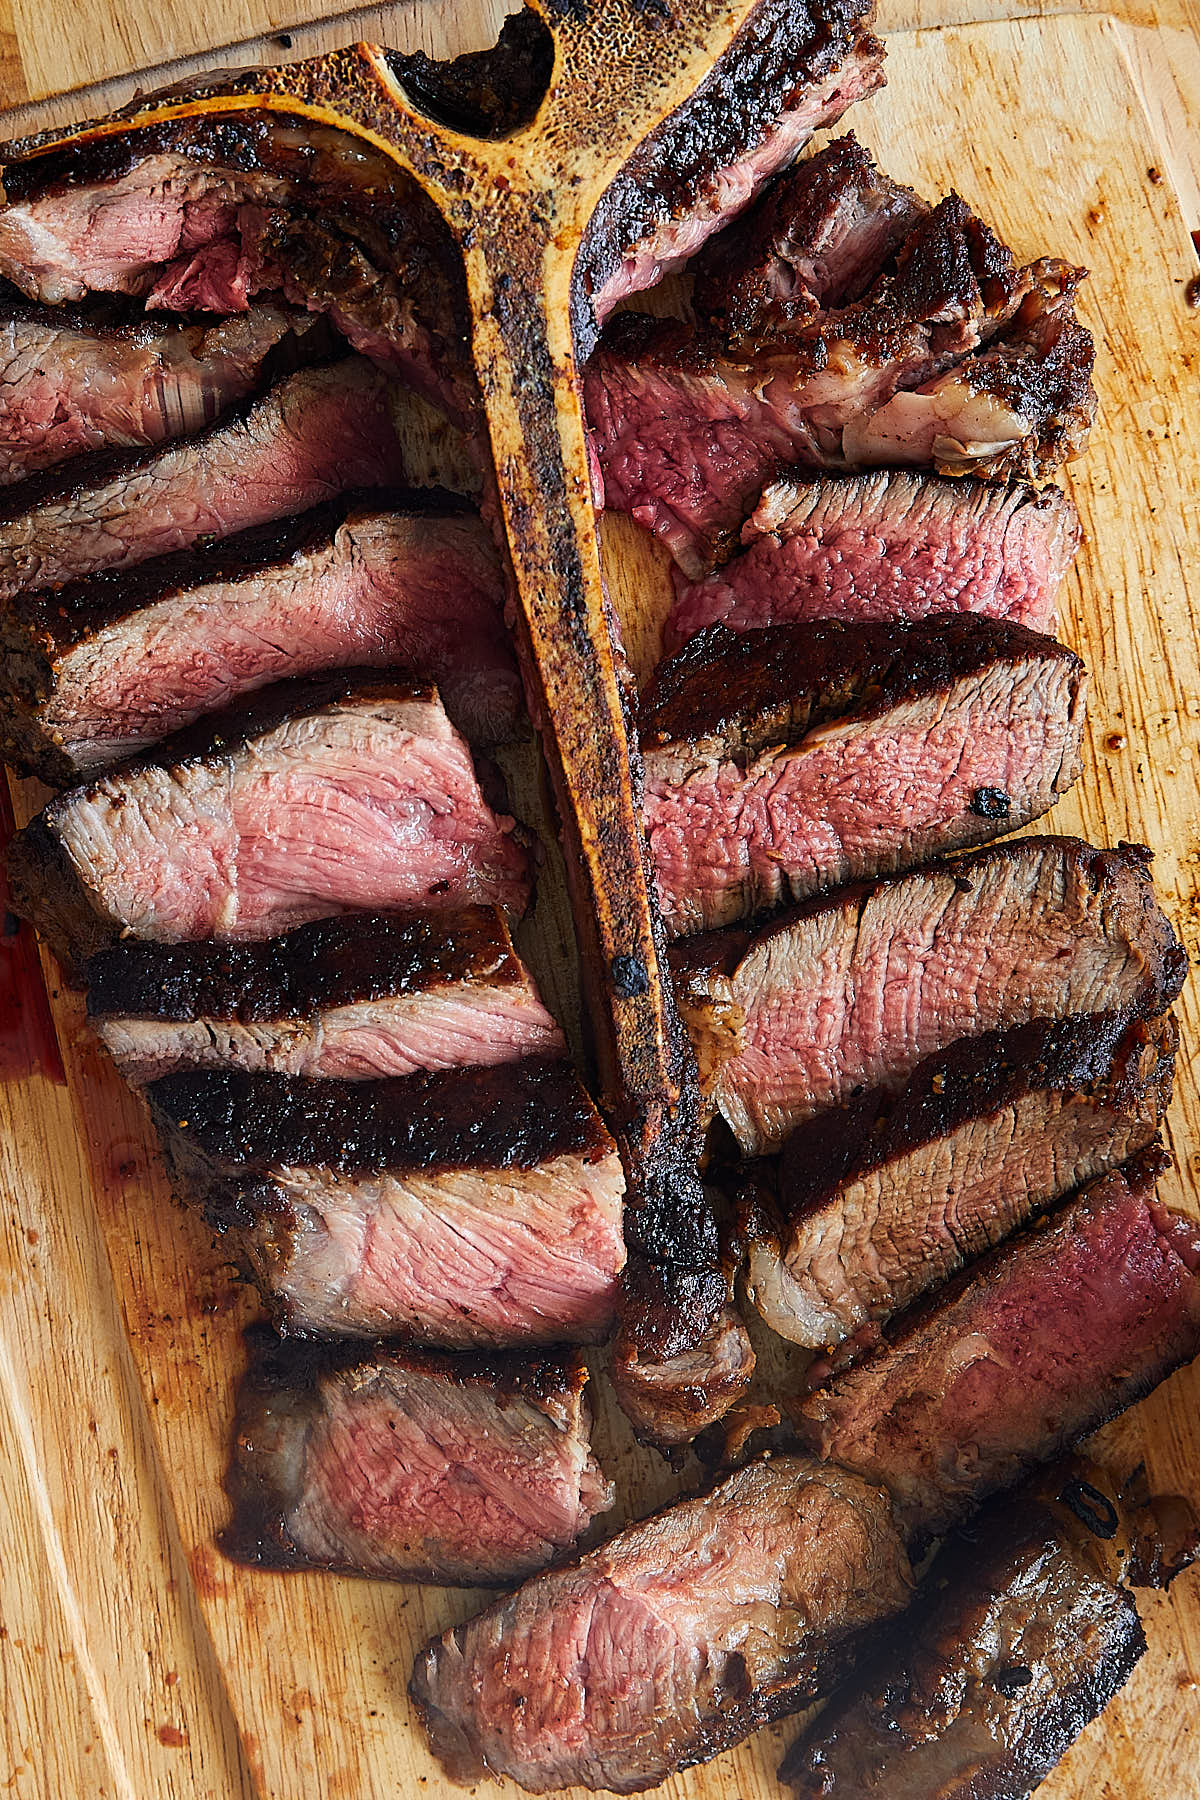 Sliced Porterhouse Steak